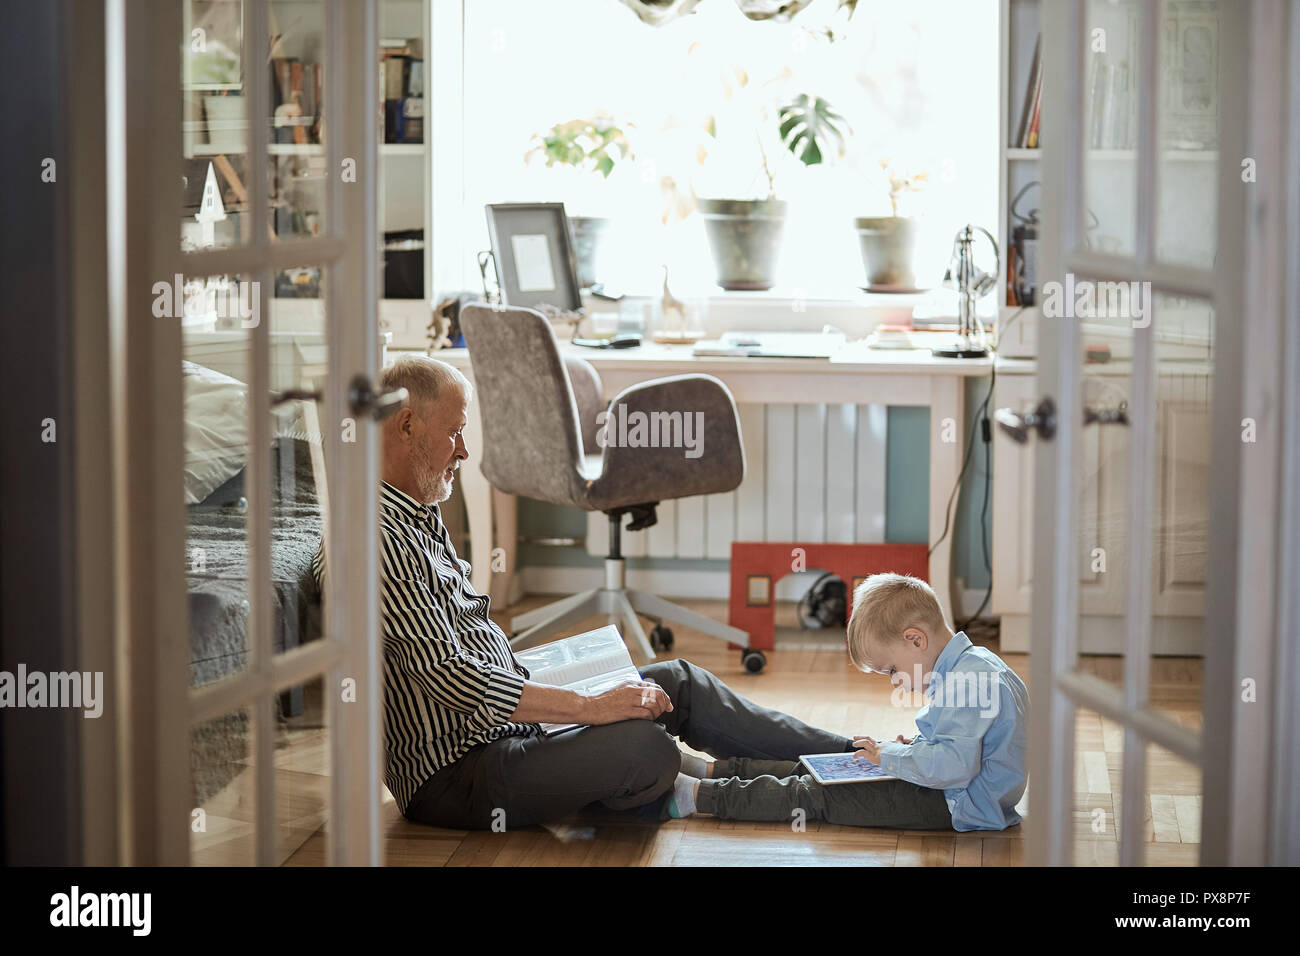 Grandpa looks photo album with his wedding, little boy using electronic tablet - Stock Image